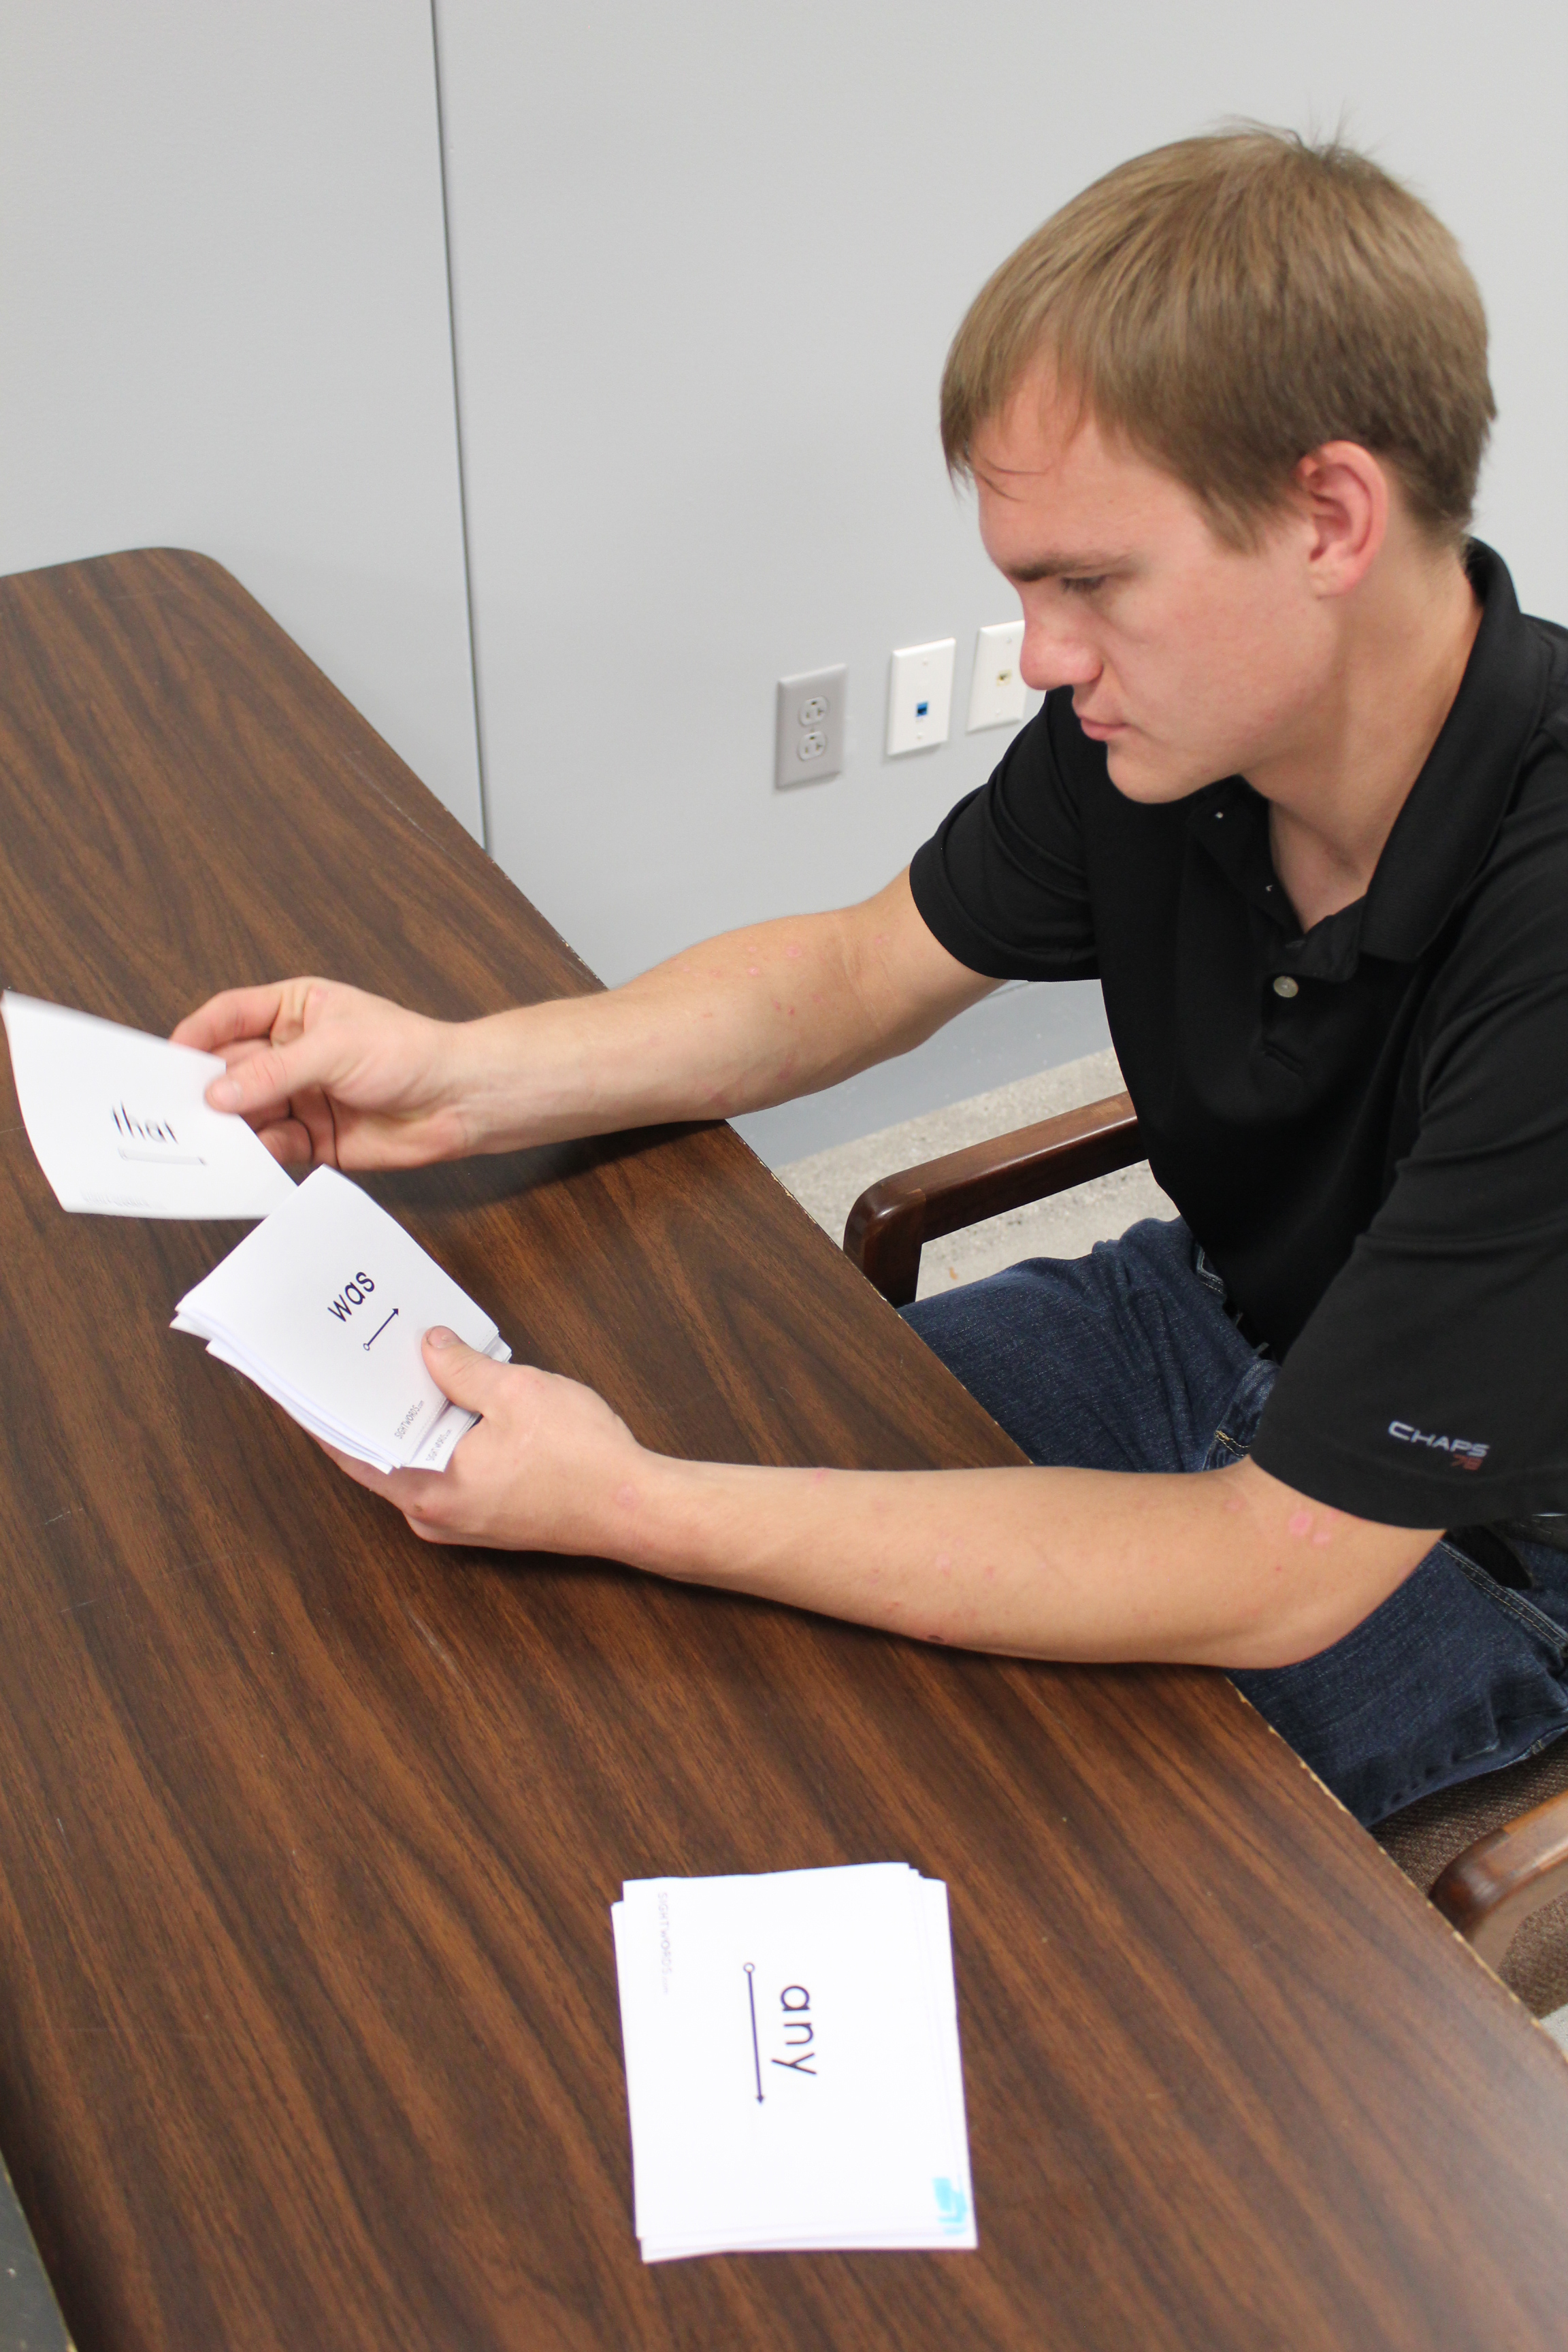 While most of Gunnar's work at Goodwill is computer-based, he also uses flash cards to test his reading skills.